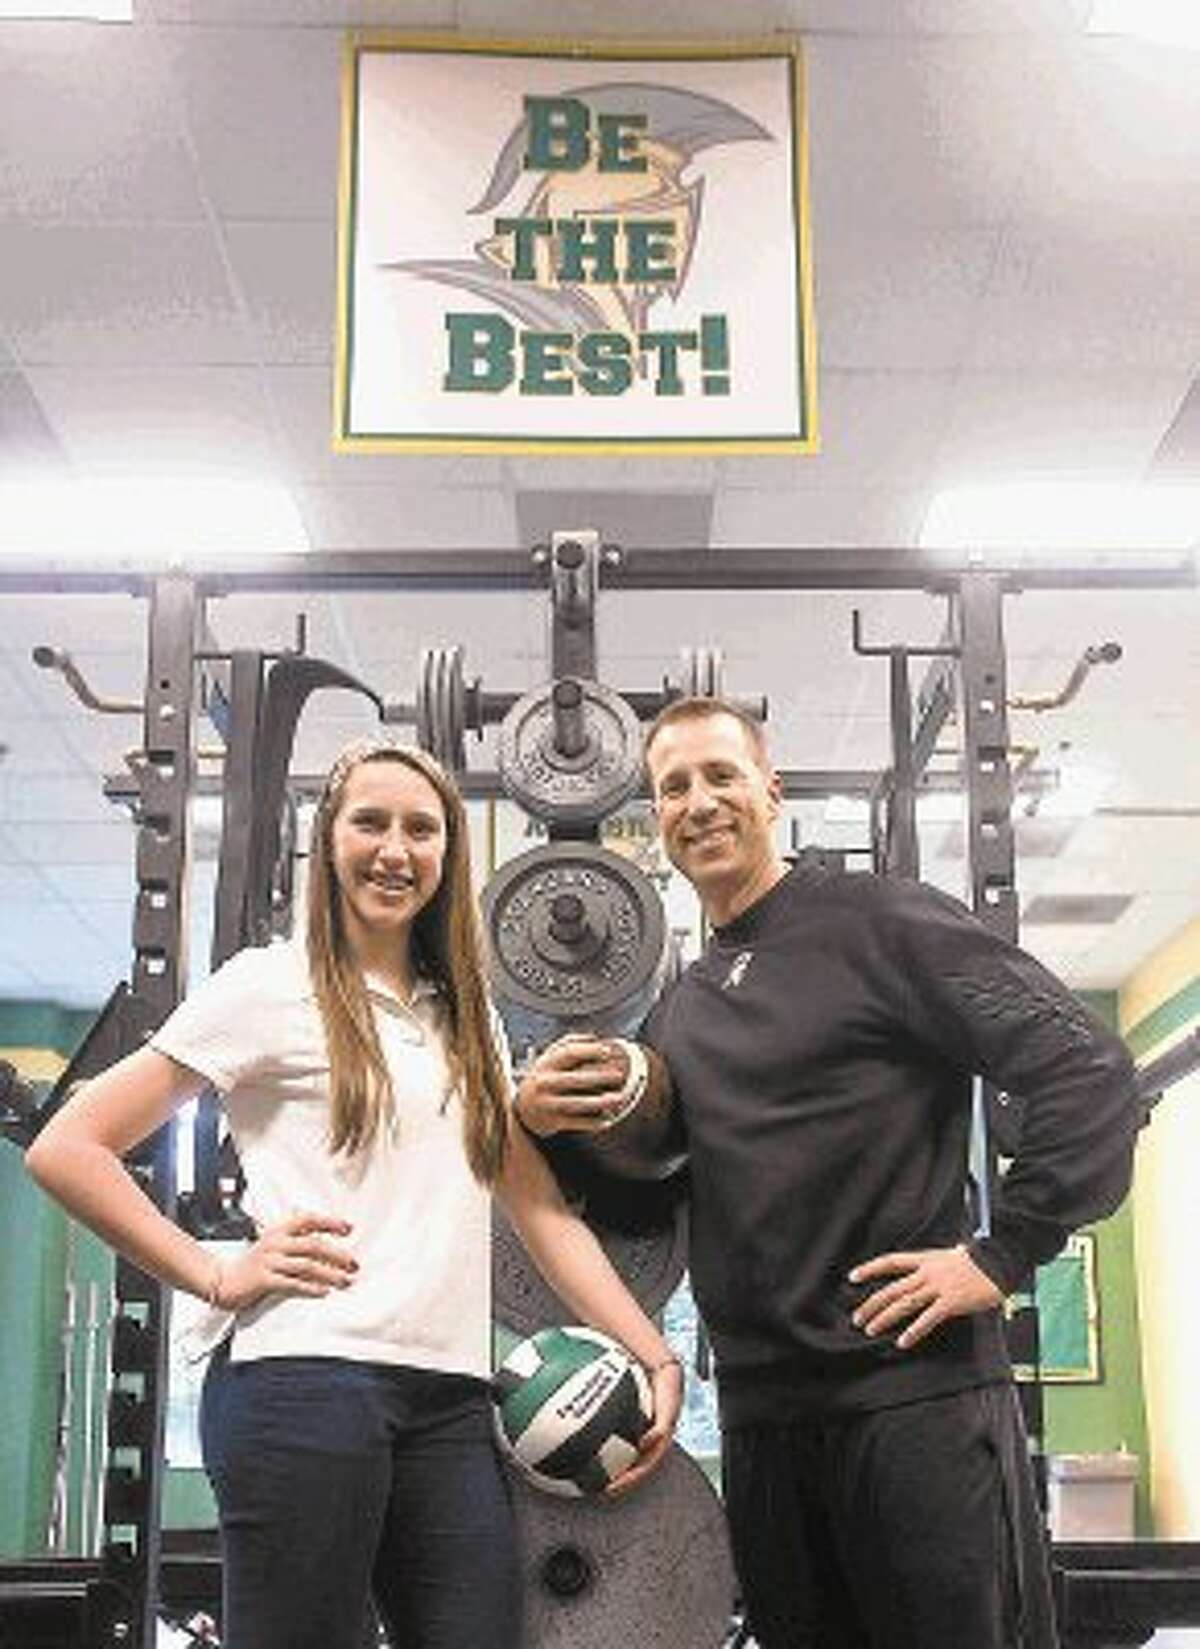 TWCA's Nate and Darcy Sanford have built a strong relationship over the years and continue to do so as they coach and compete in sports.